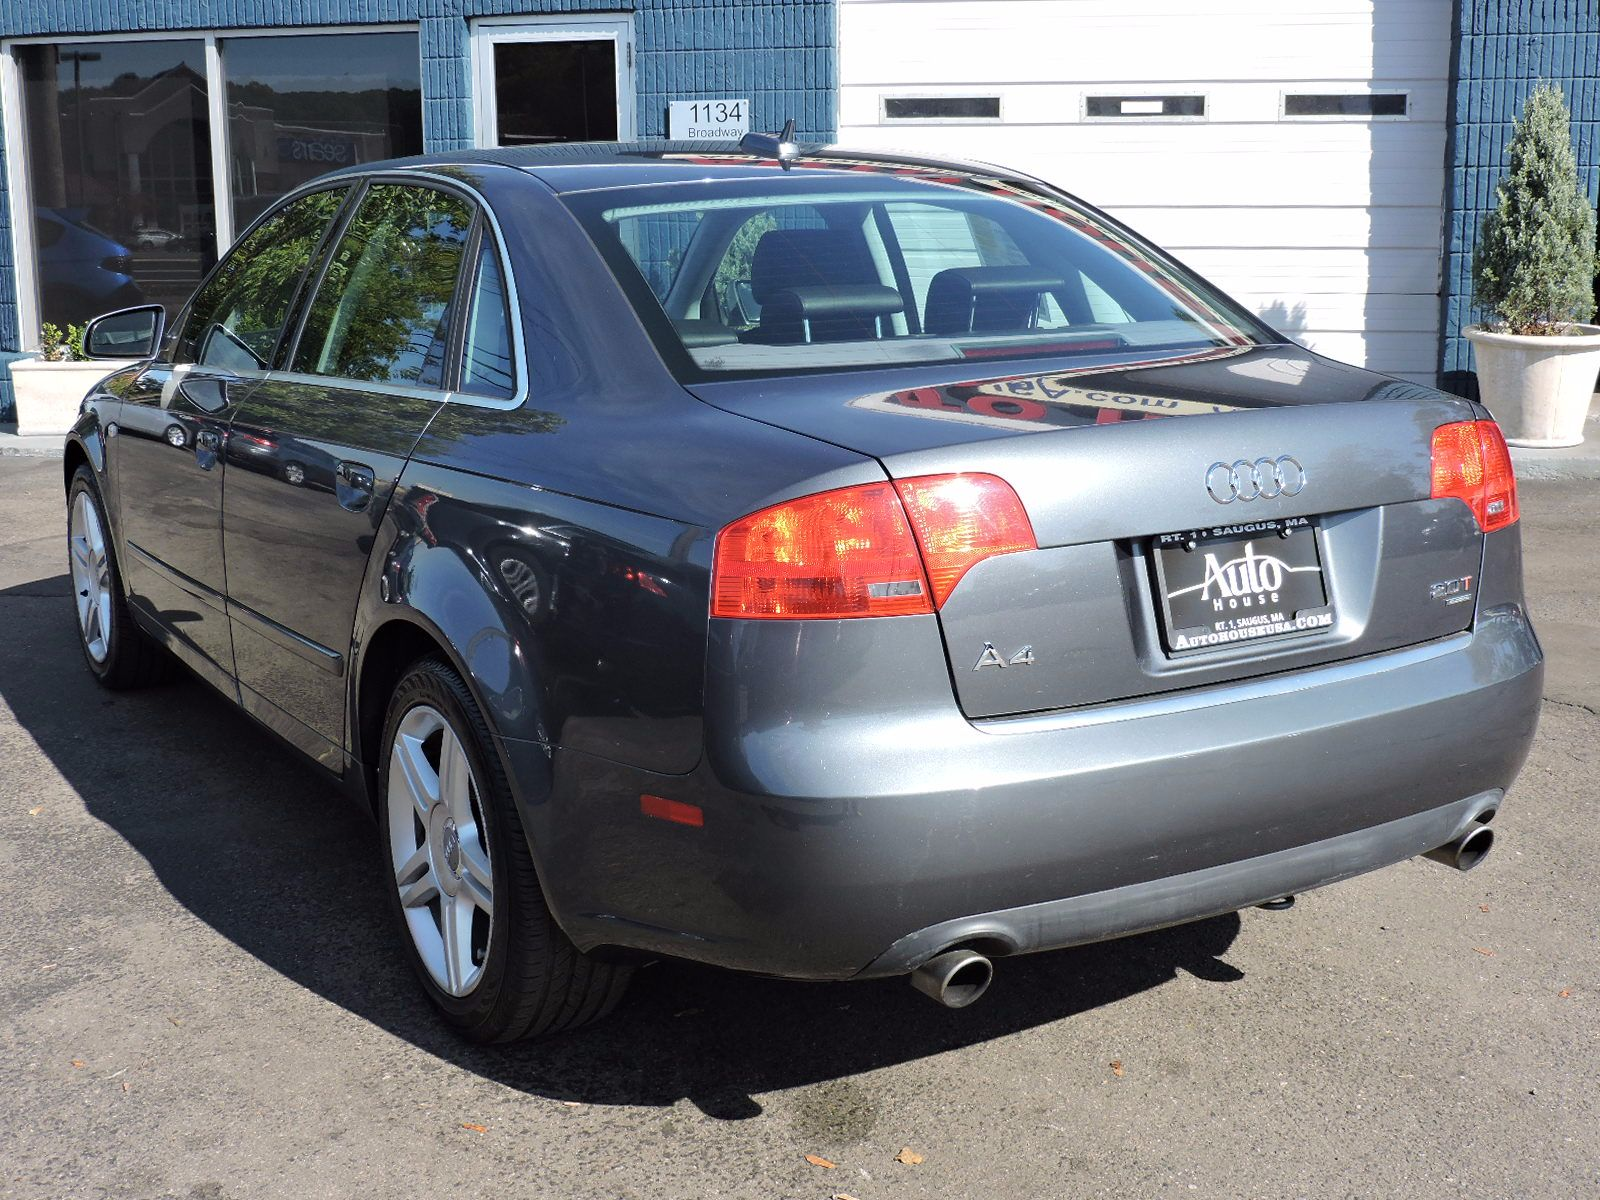 2006 Audi A4 2.0T - Quattro - All Wheel Drive - 6 Speed